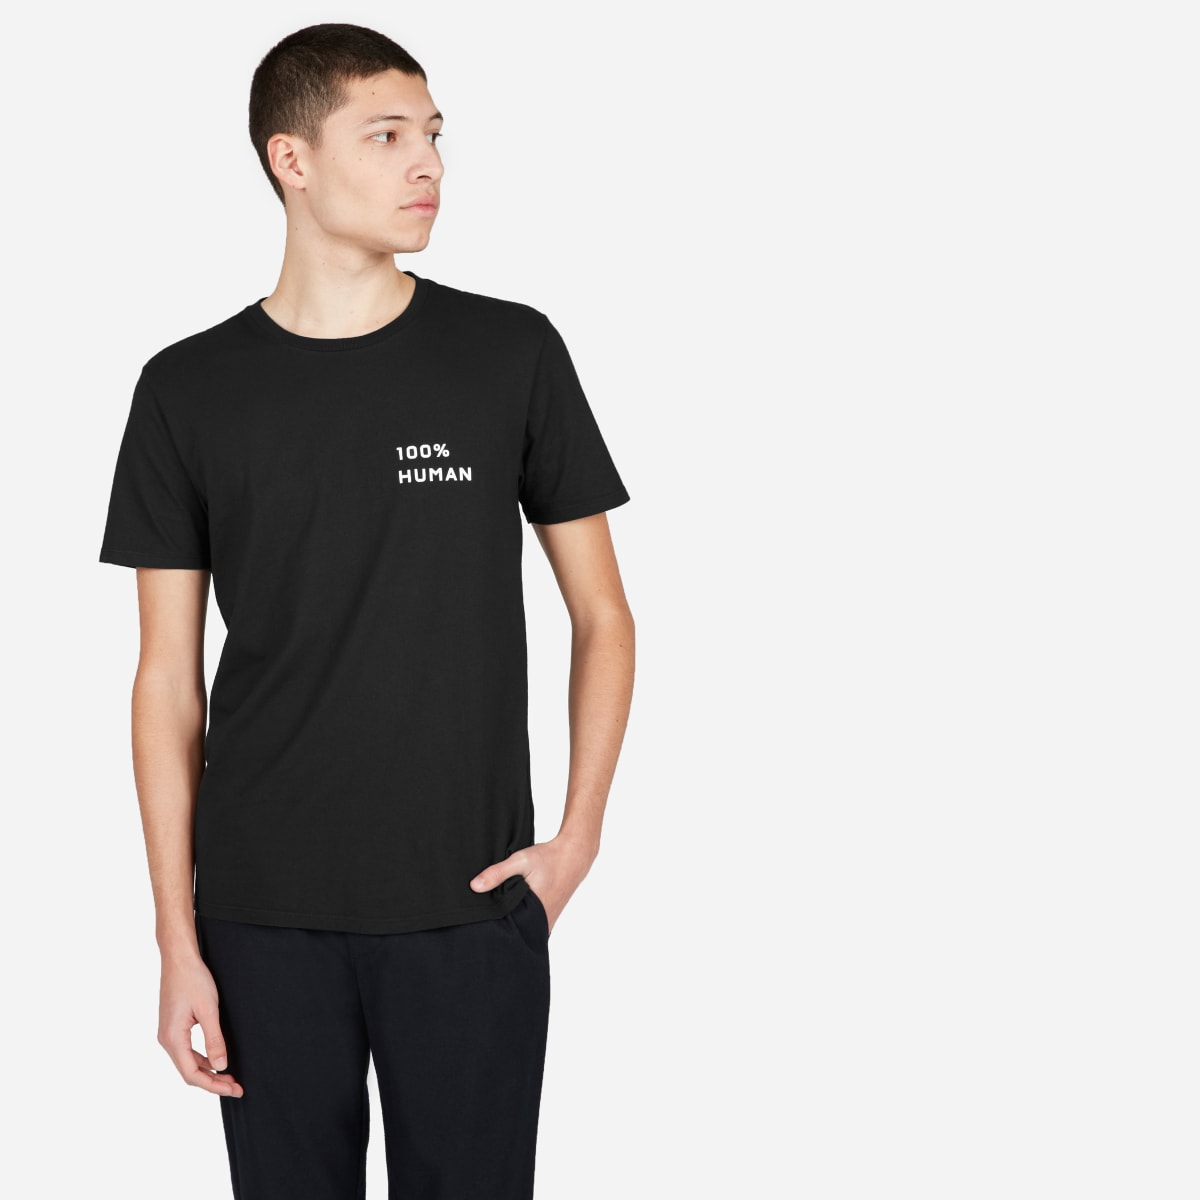 The 100% Human Unisex Crew In Small Print by Everlane